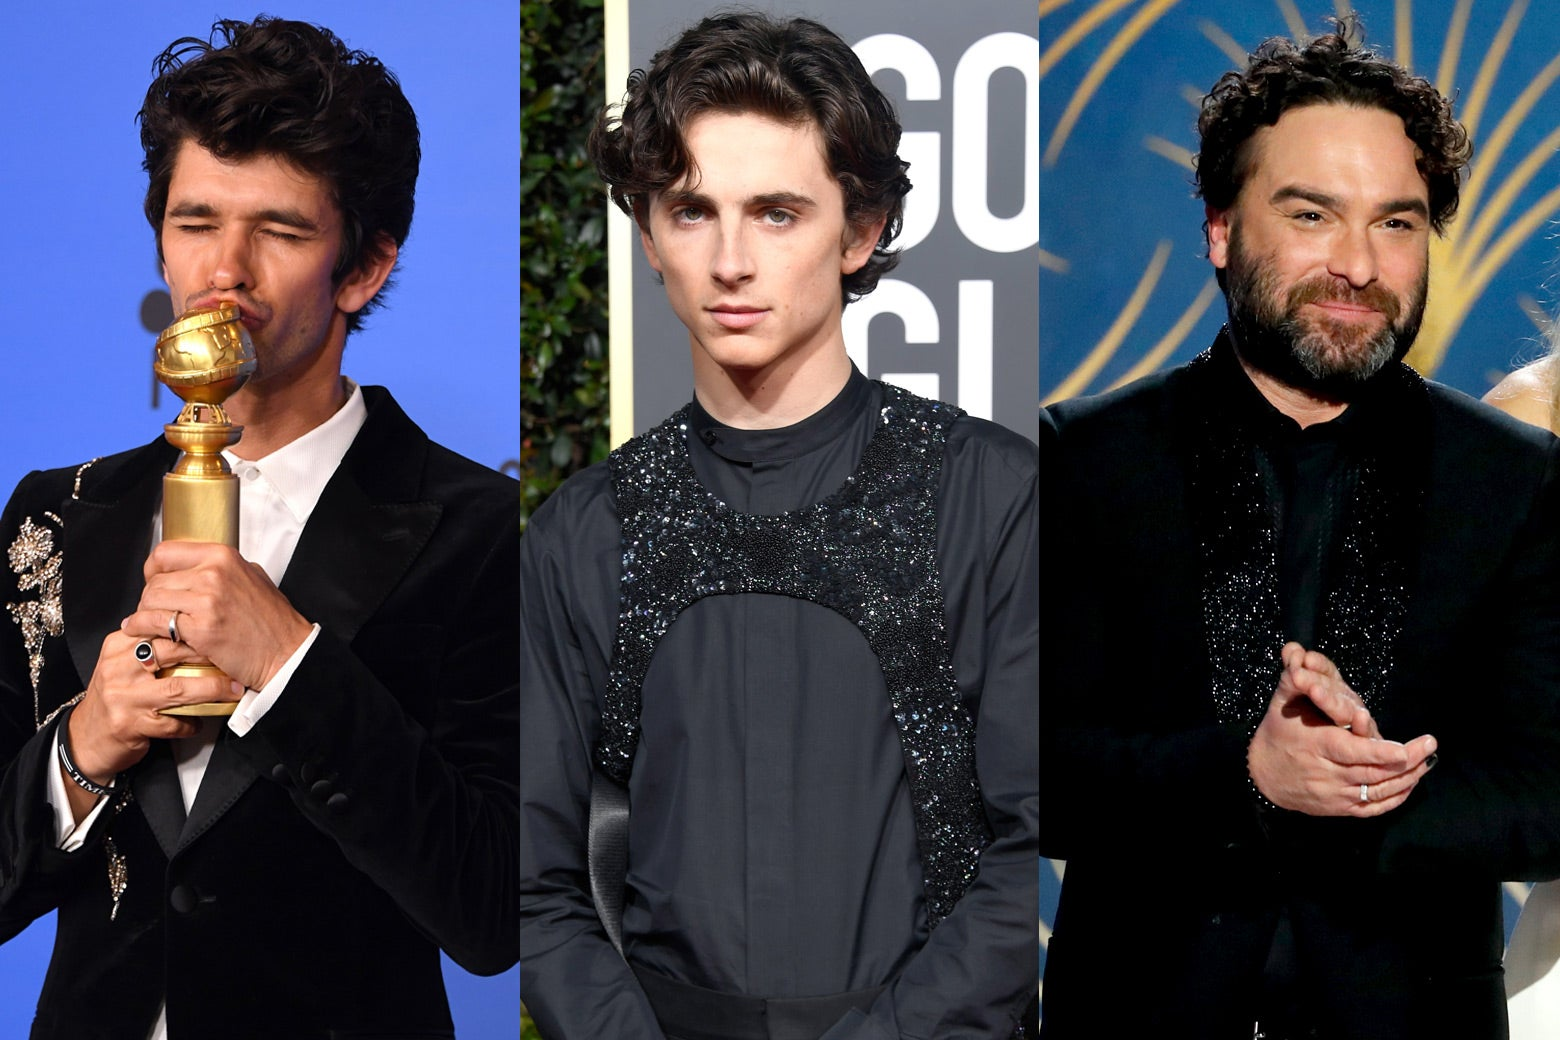 Ben Whishaw, Timothee Chalamet, and Johnny Galecki at the 2019 Golden Globes.